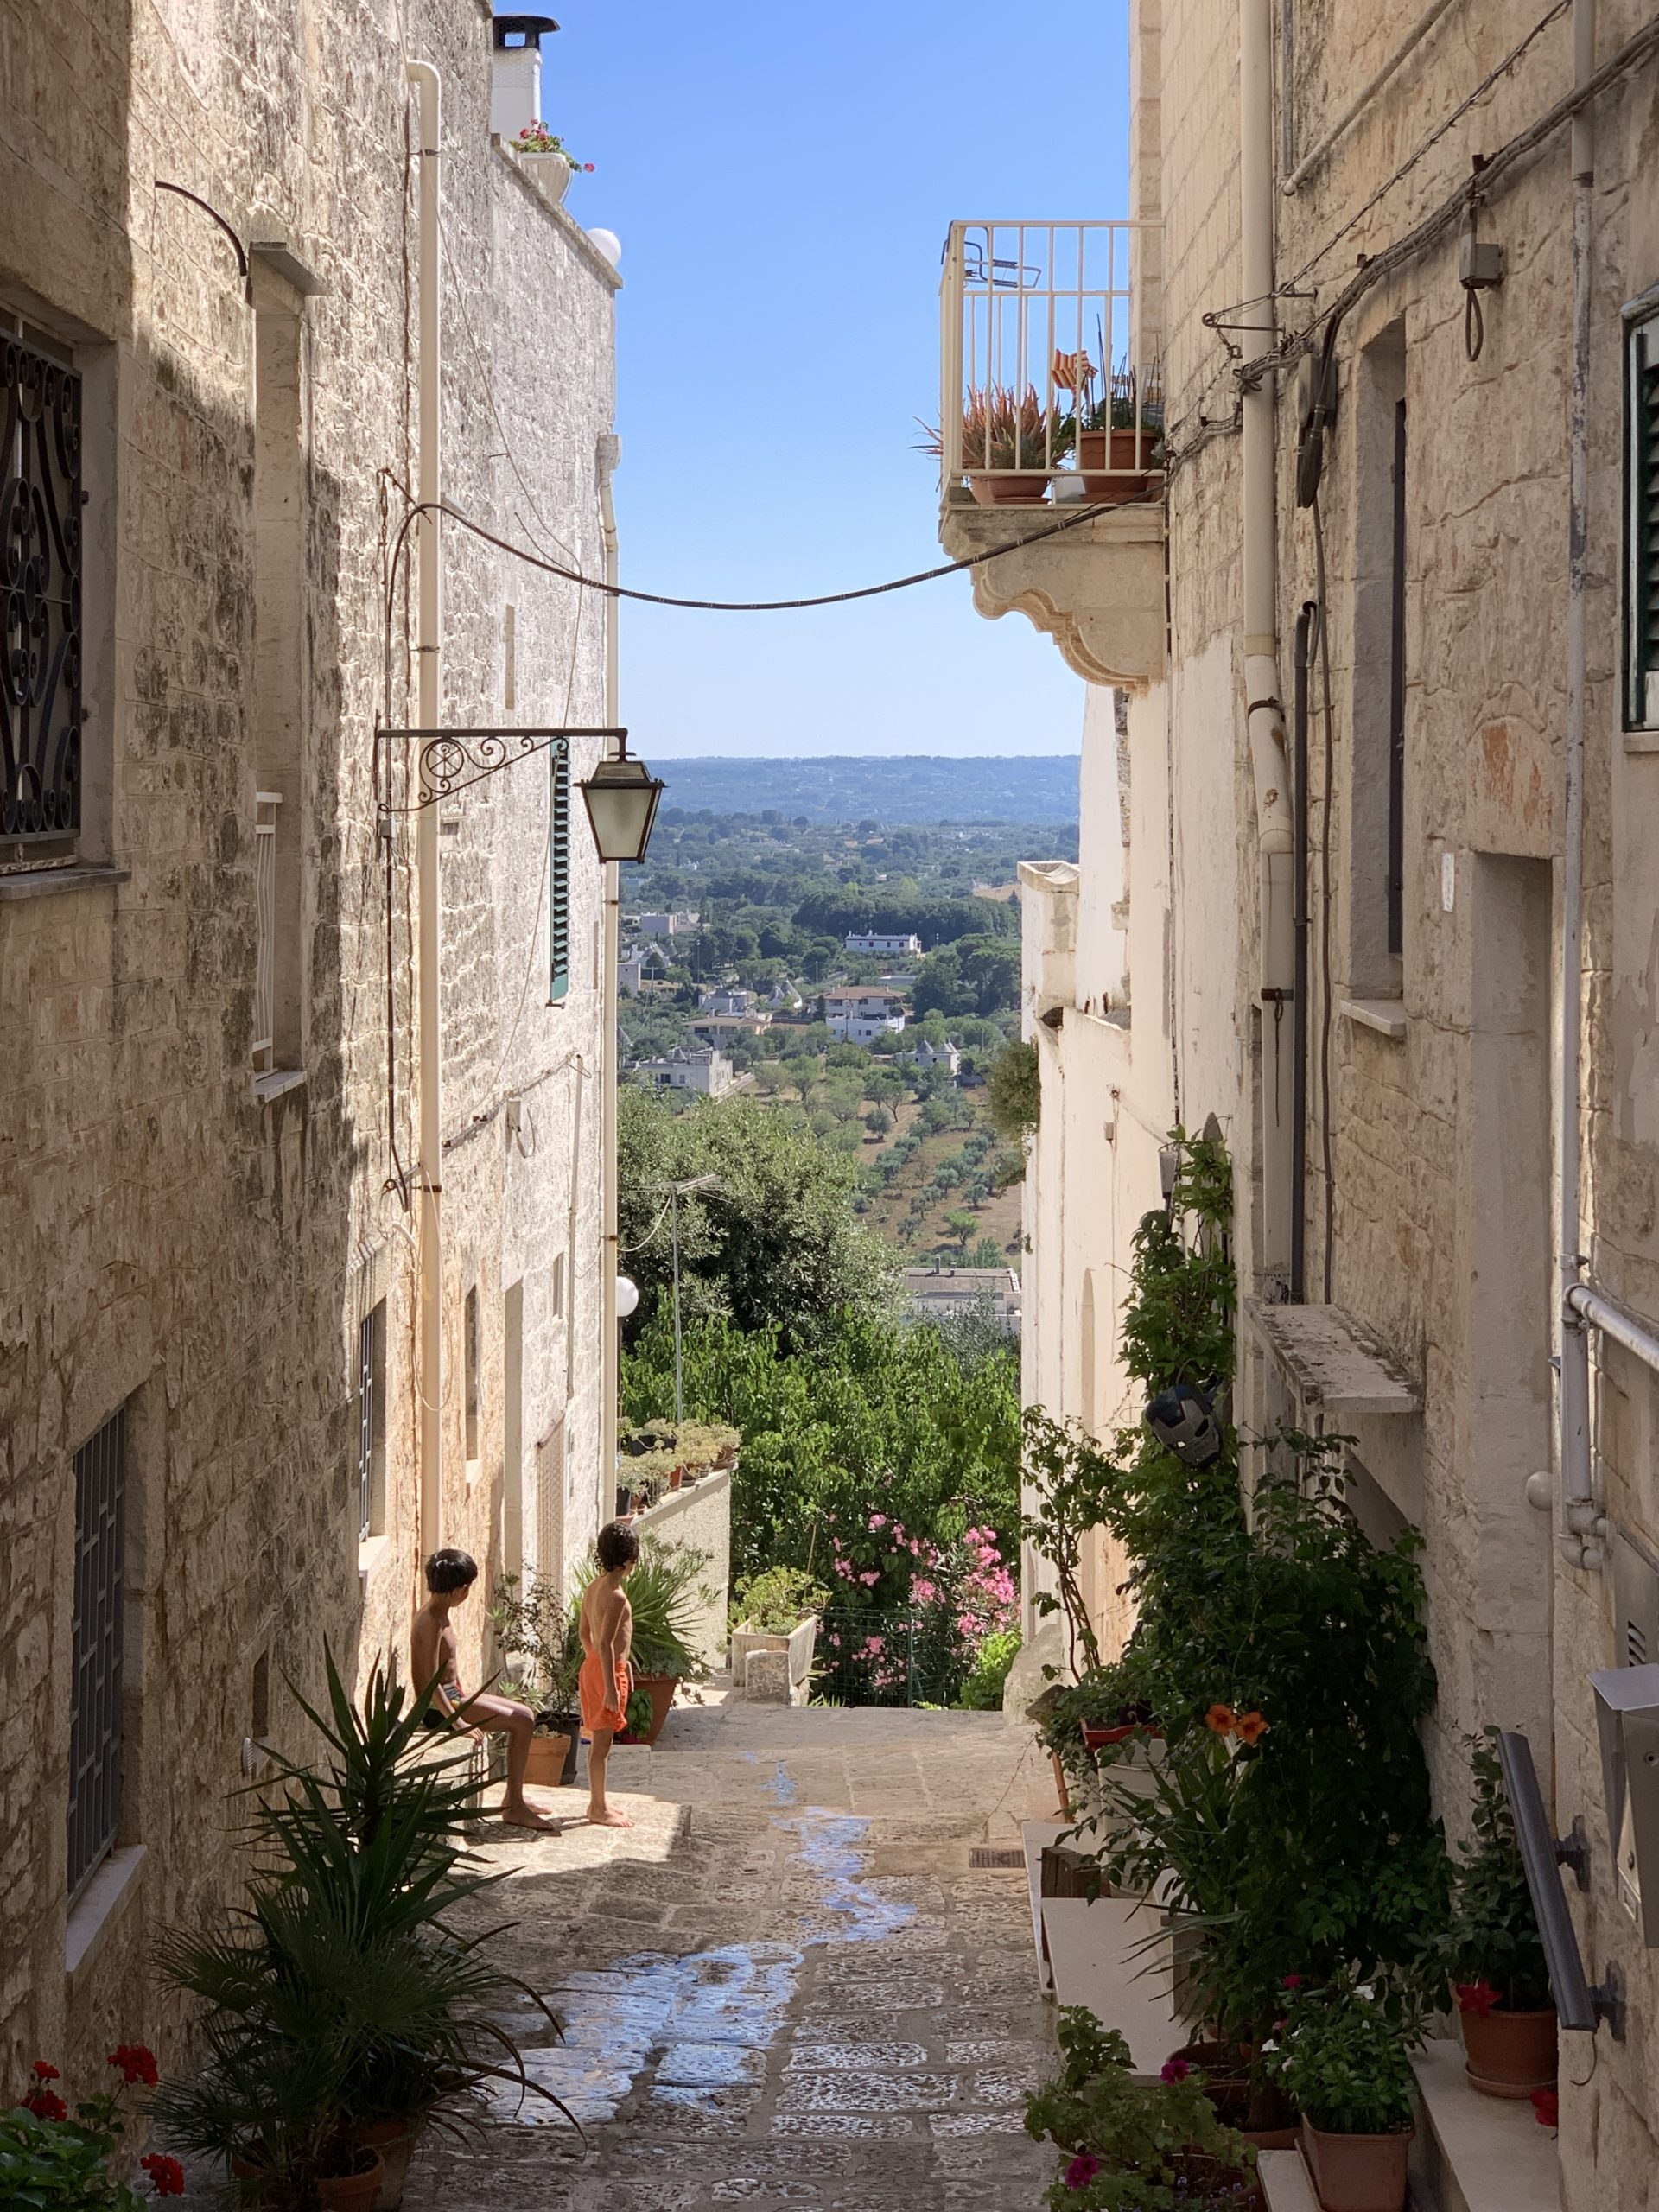 Locorotondo in Puglia is one of the Itria Valley's most beautiful towns and officially one of the most beautiful in Italy